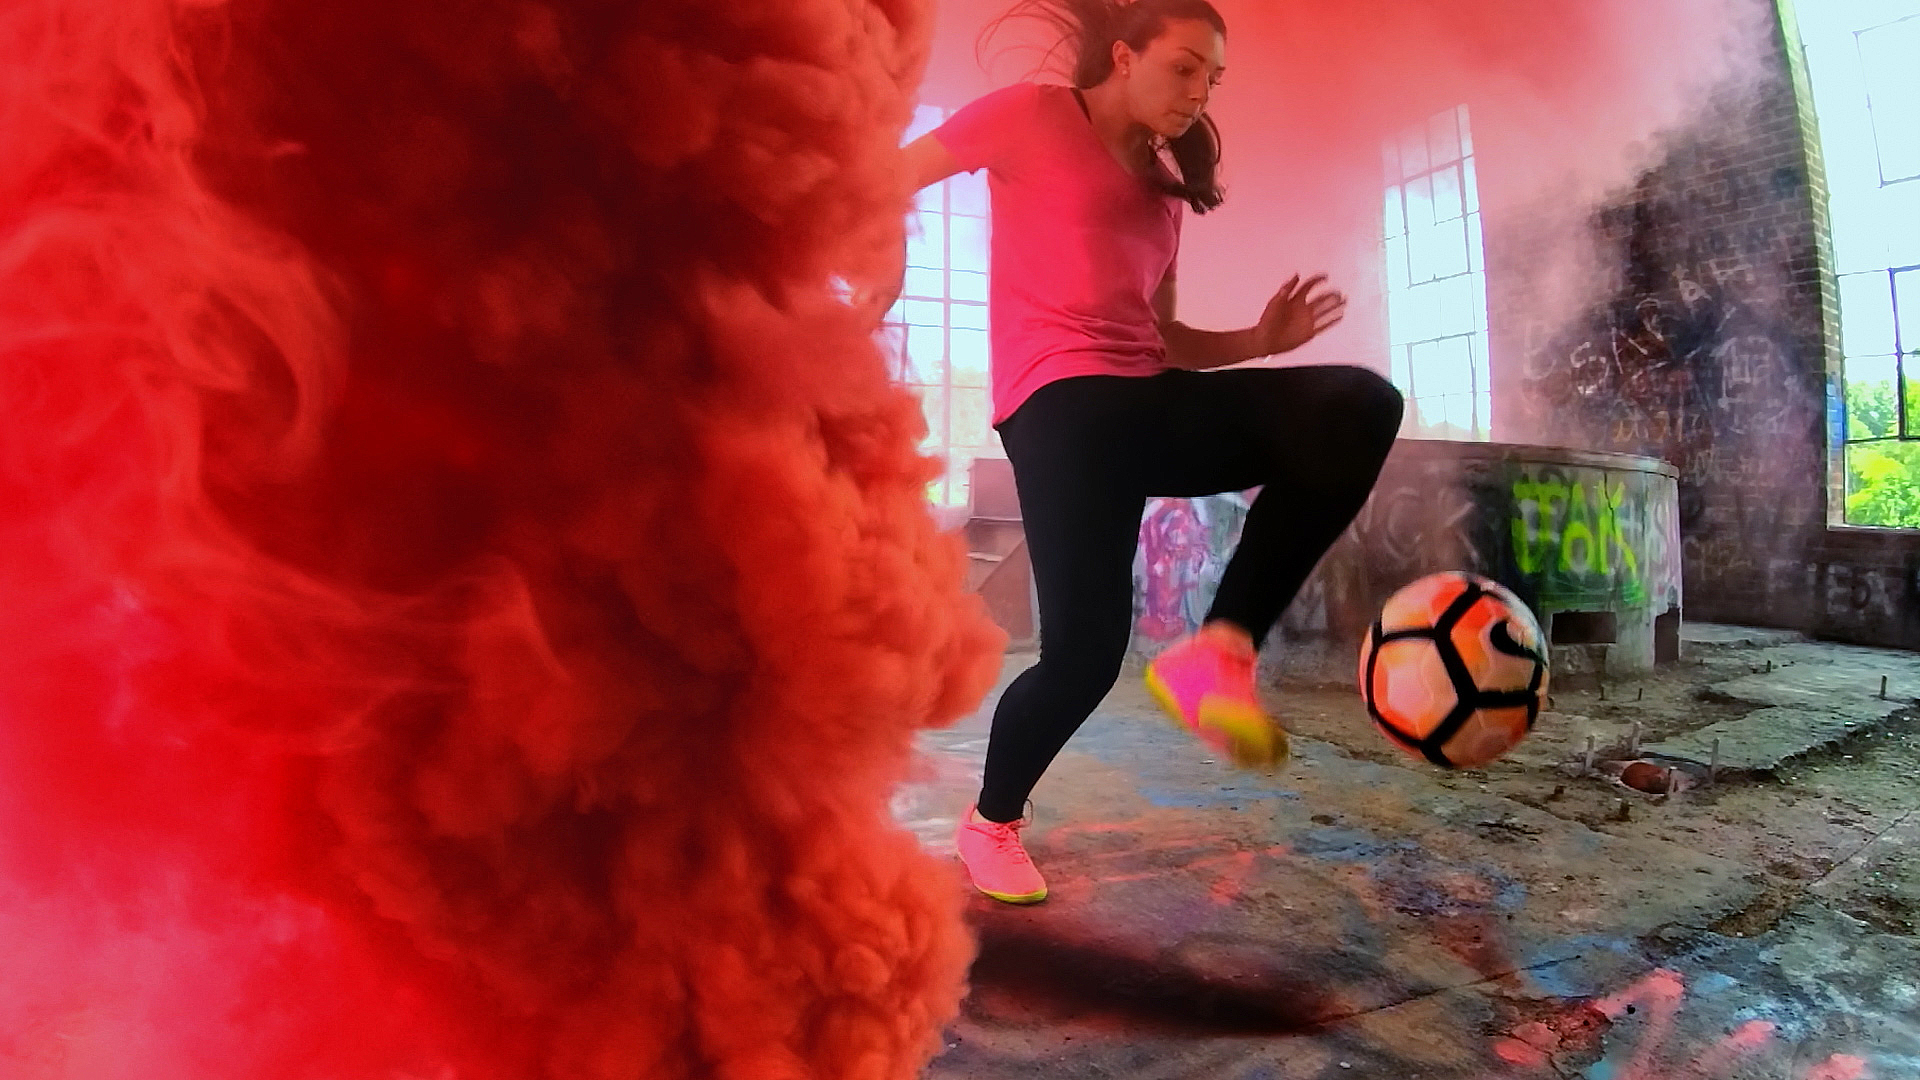 A girl does soccer tricks with colored smoke around her.